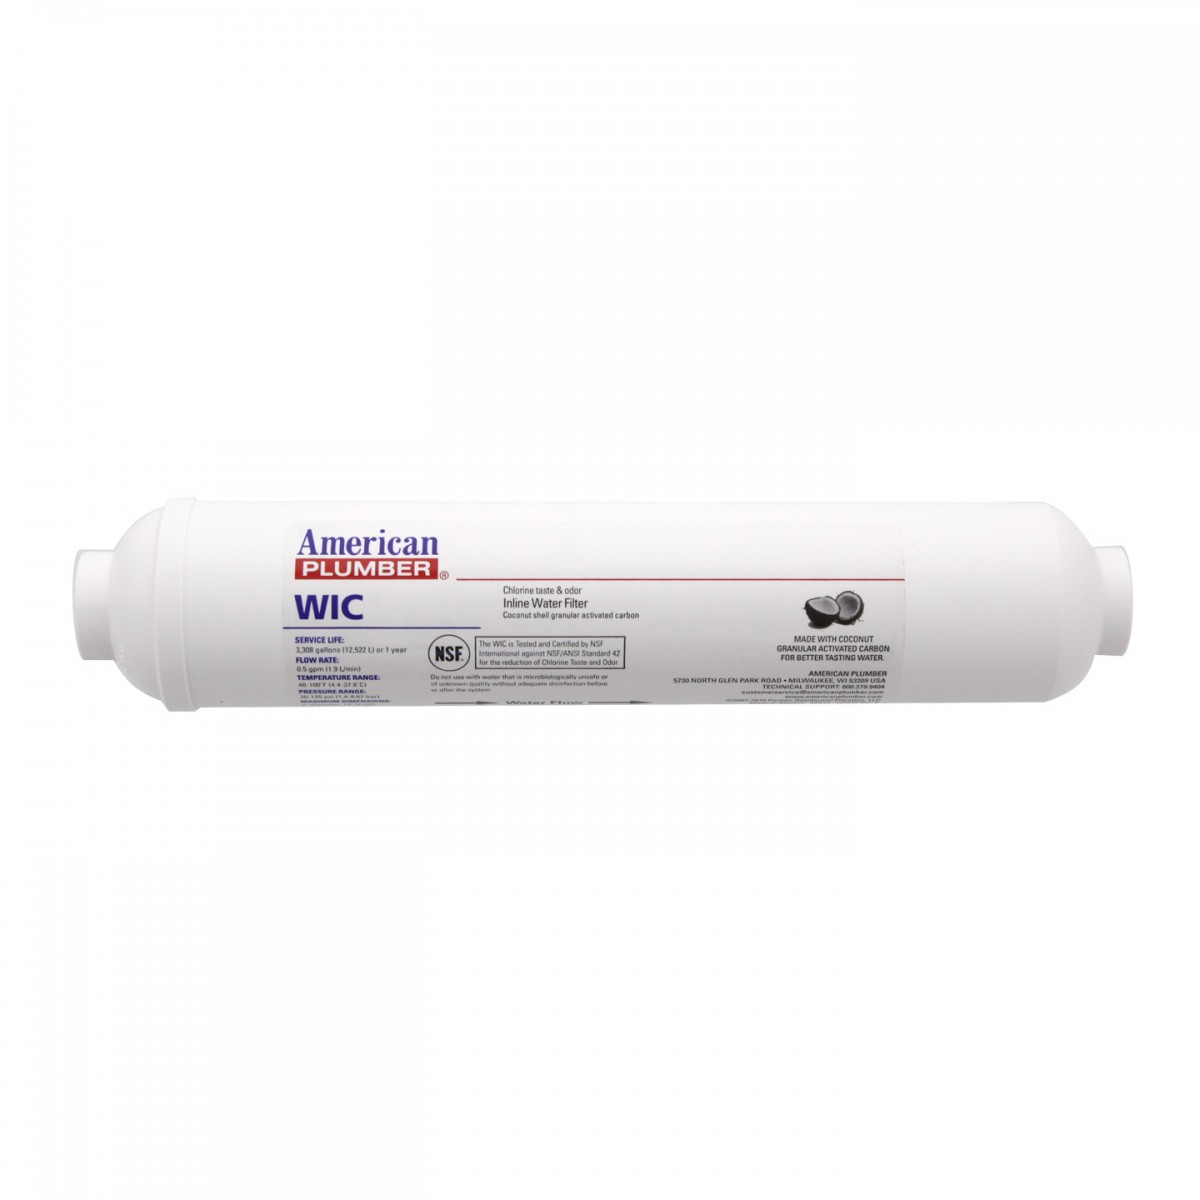 American Plumber WIC In-line Quick Connect Filter